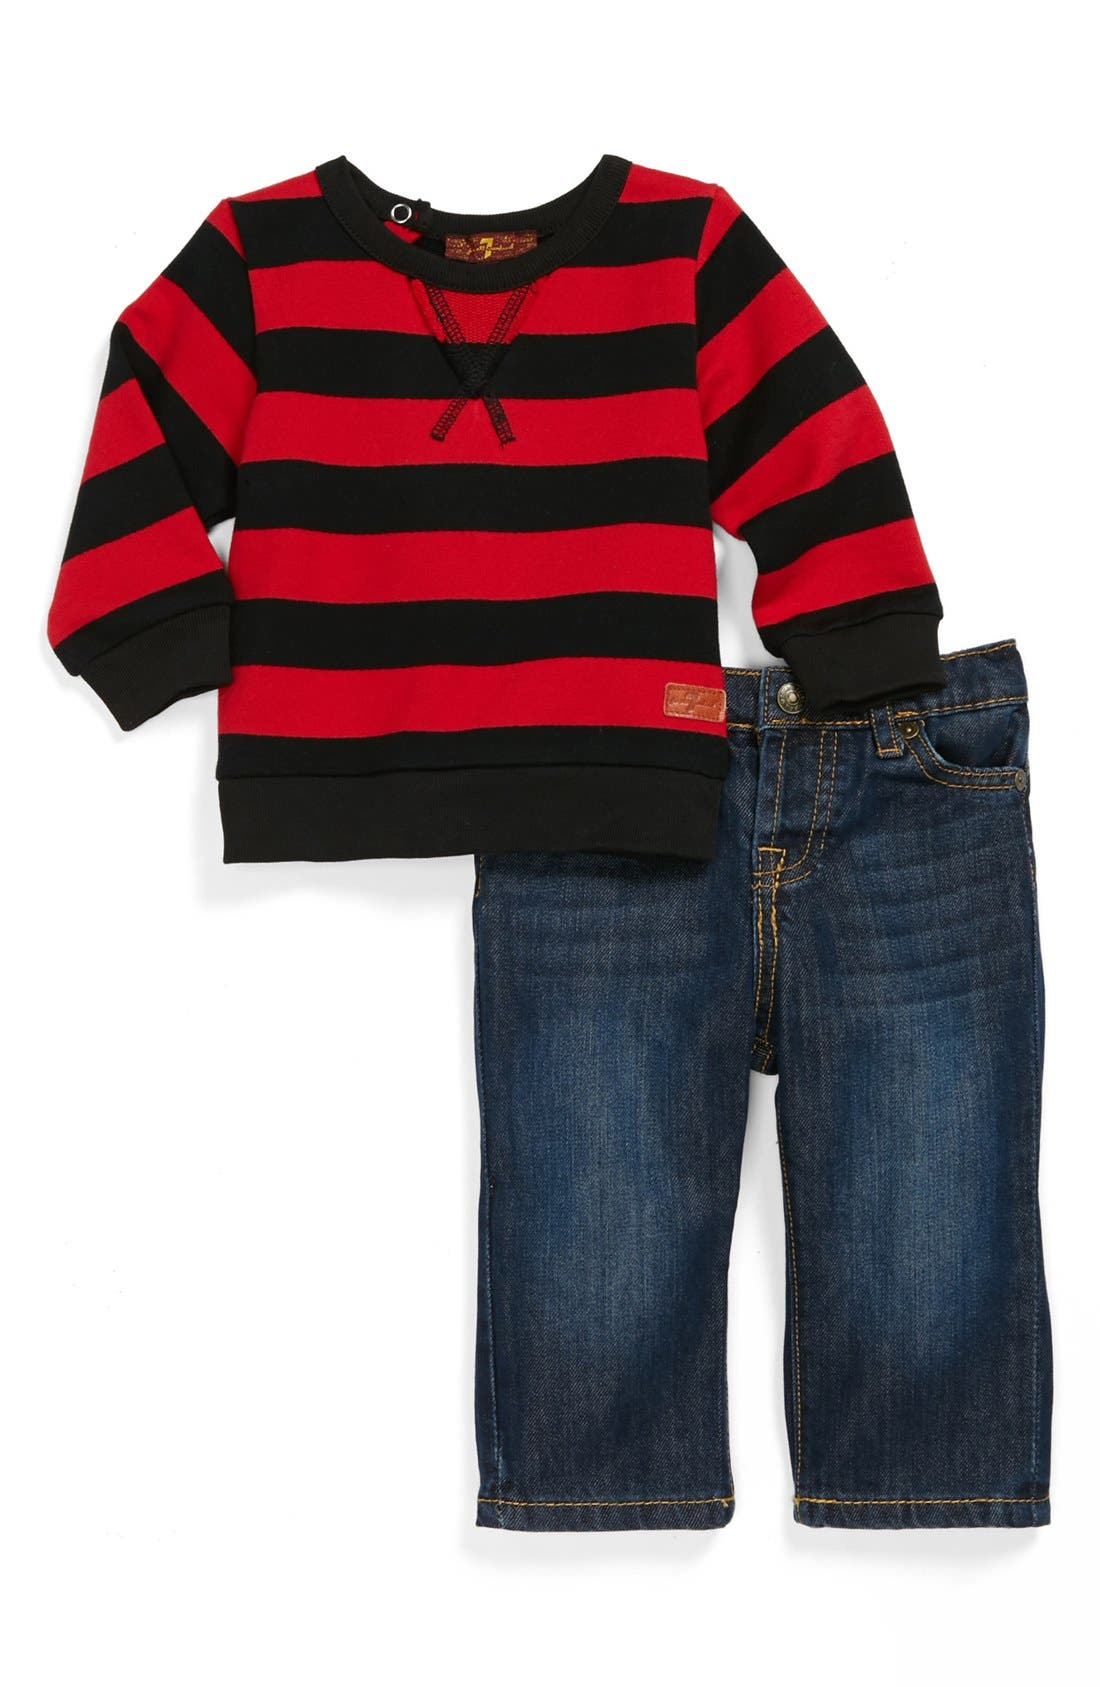 Alternate Image 1 Selected - 7 For All Mankind® Dark Wash Jeans & Stripe Top (Baby Boys)